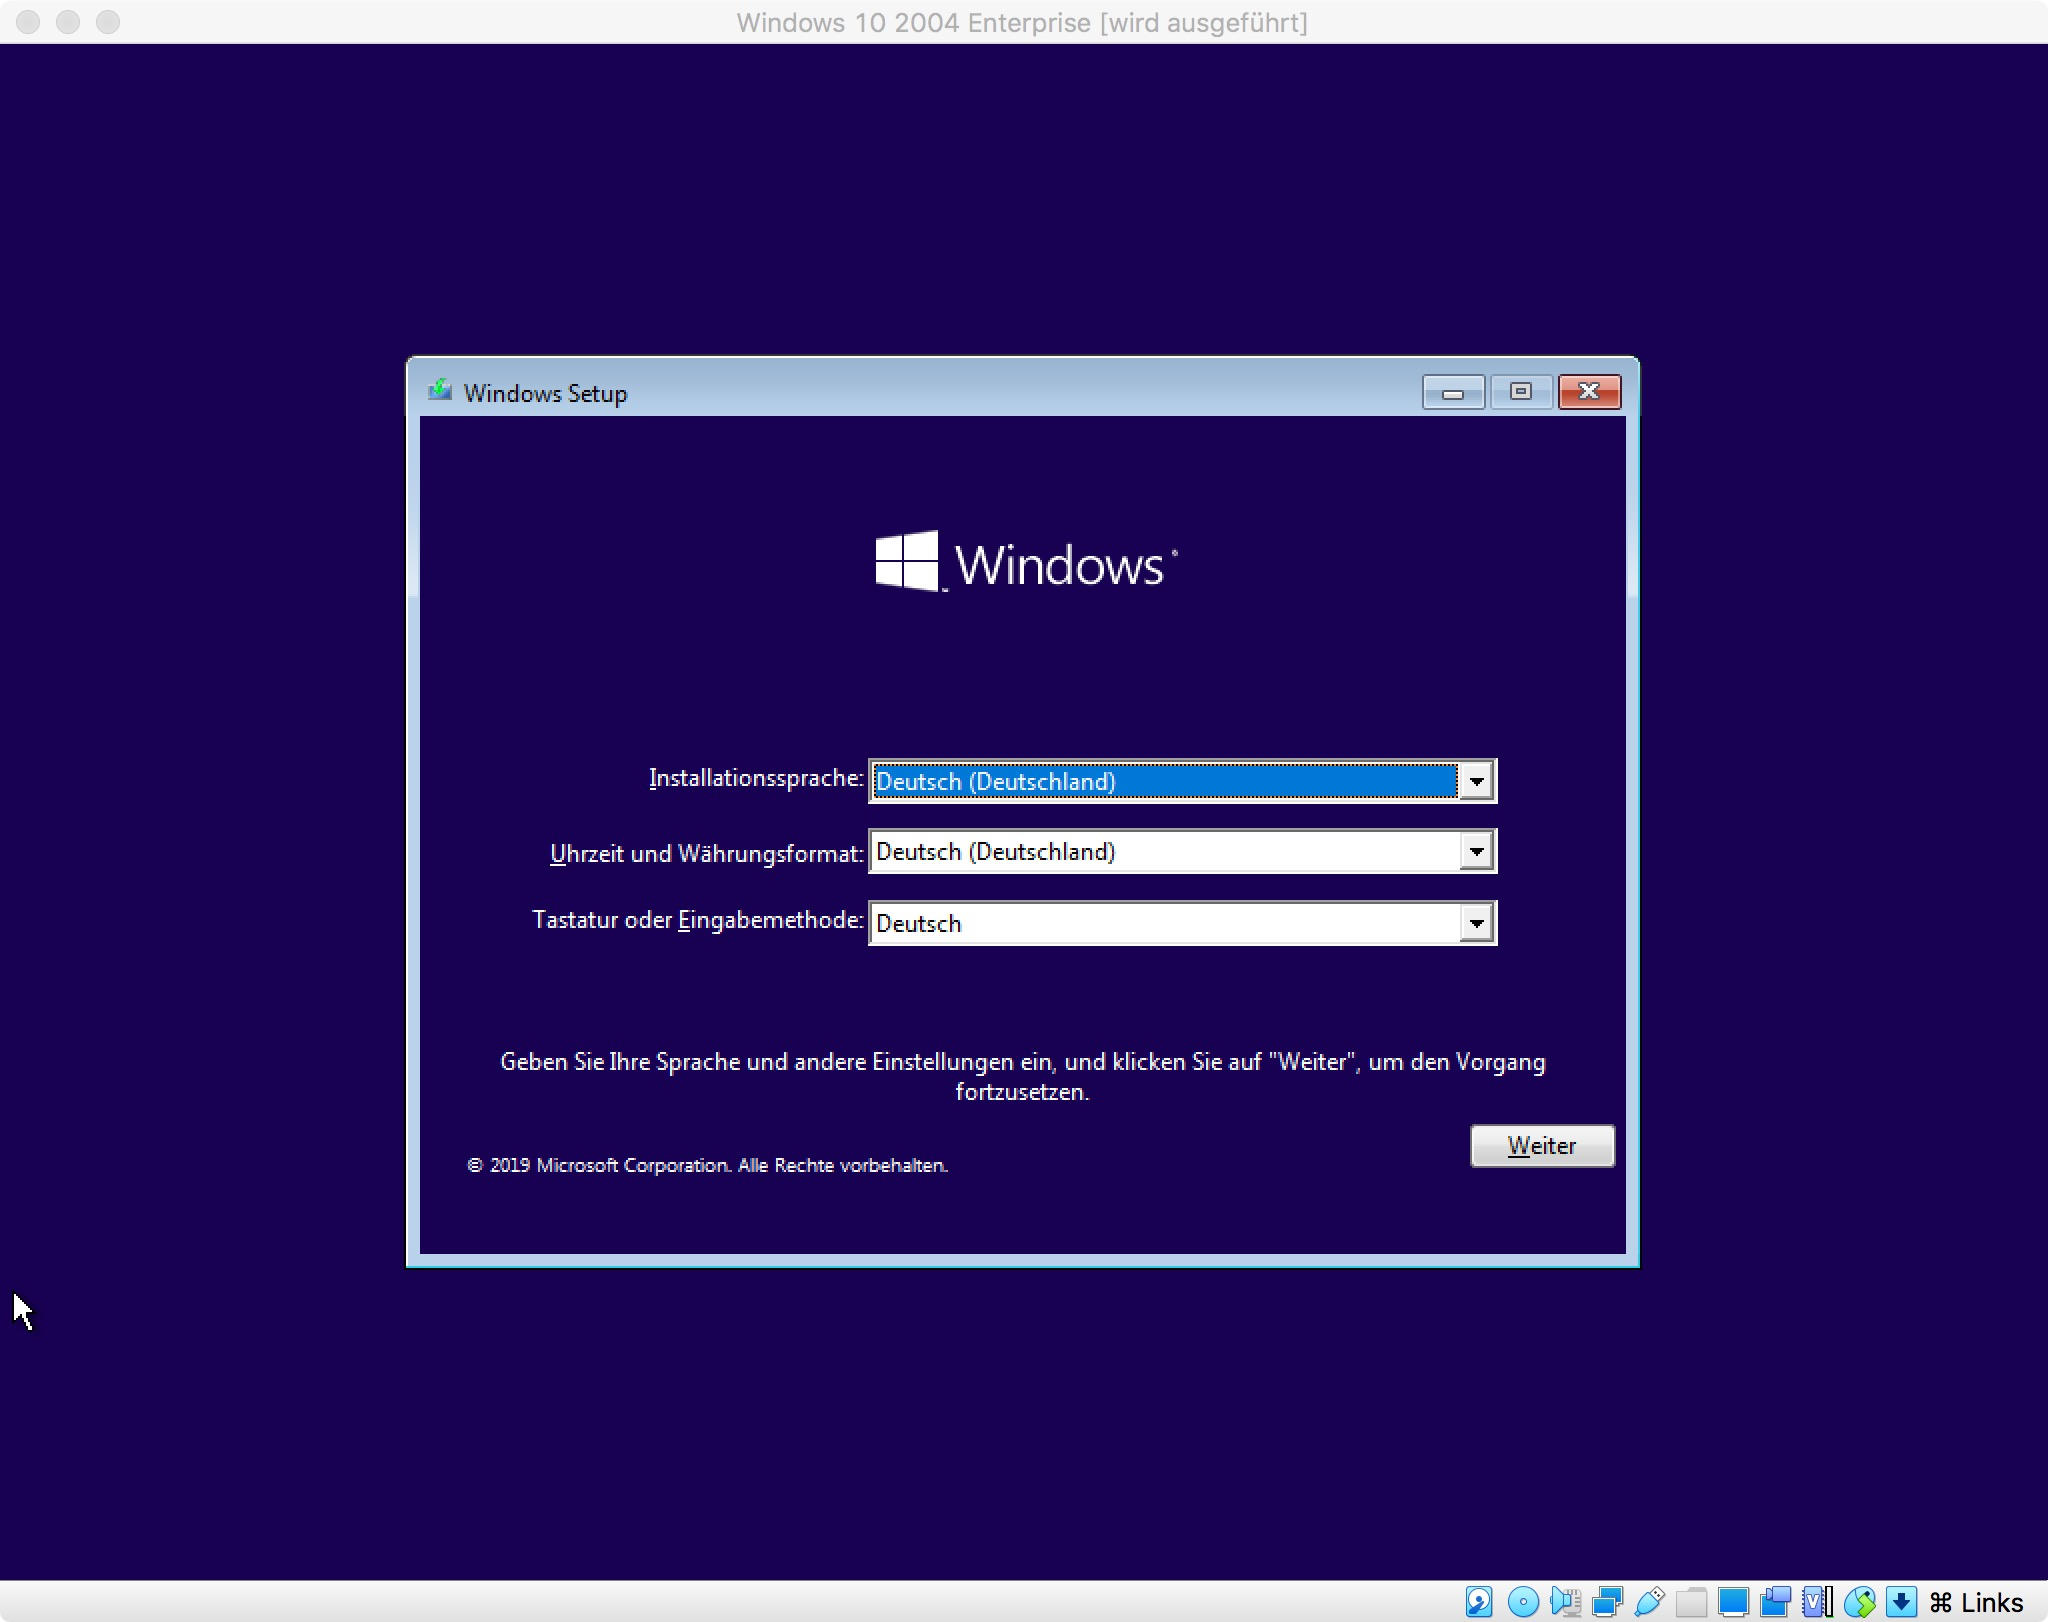 Windows 10 2004 Enterprise Edition: Setup